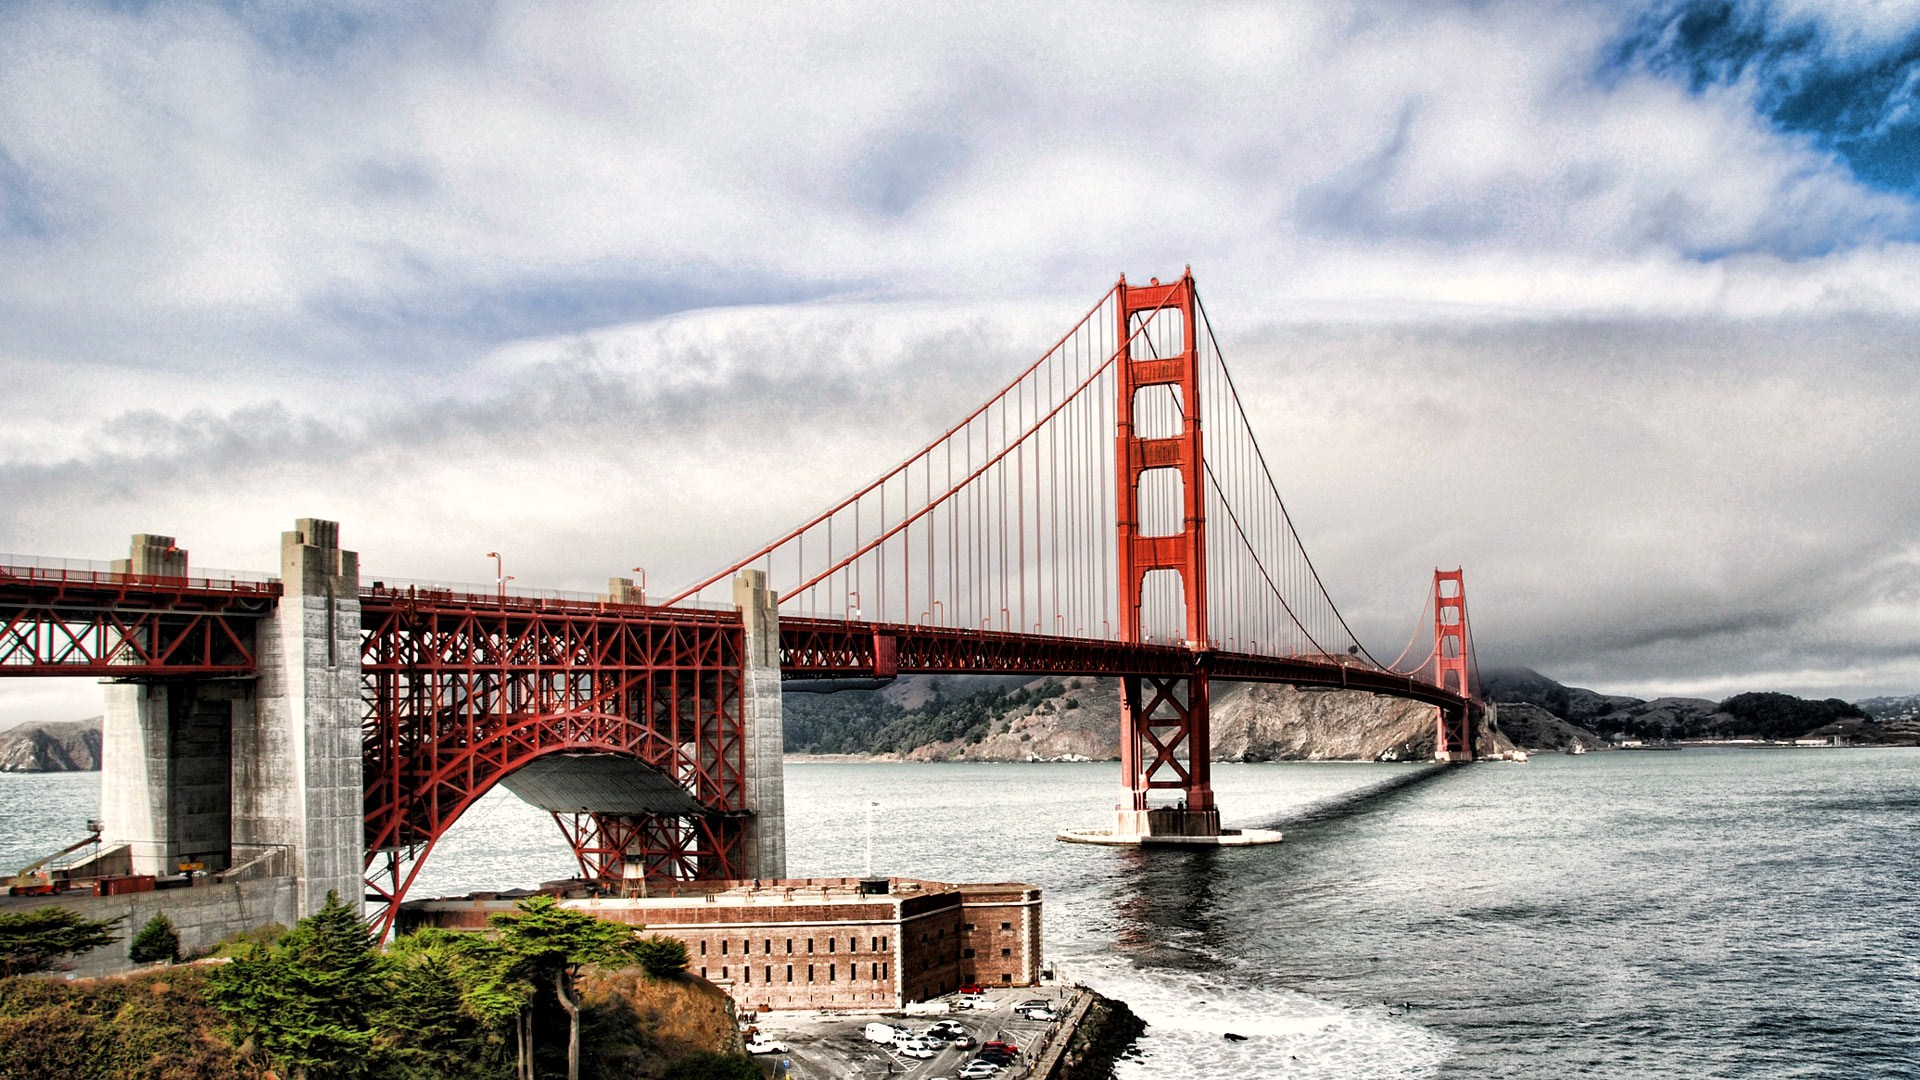 san-francisco-4k-hd-wallpapers-unabuenaidea.es (24)